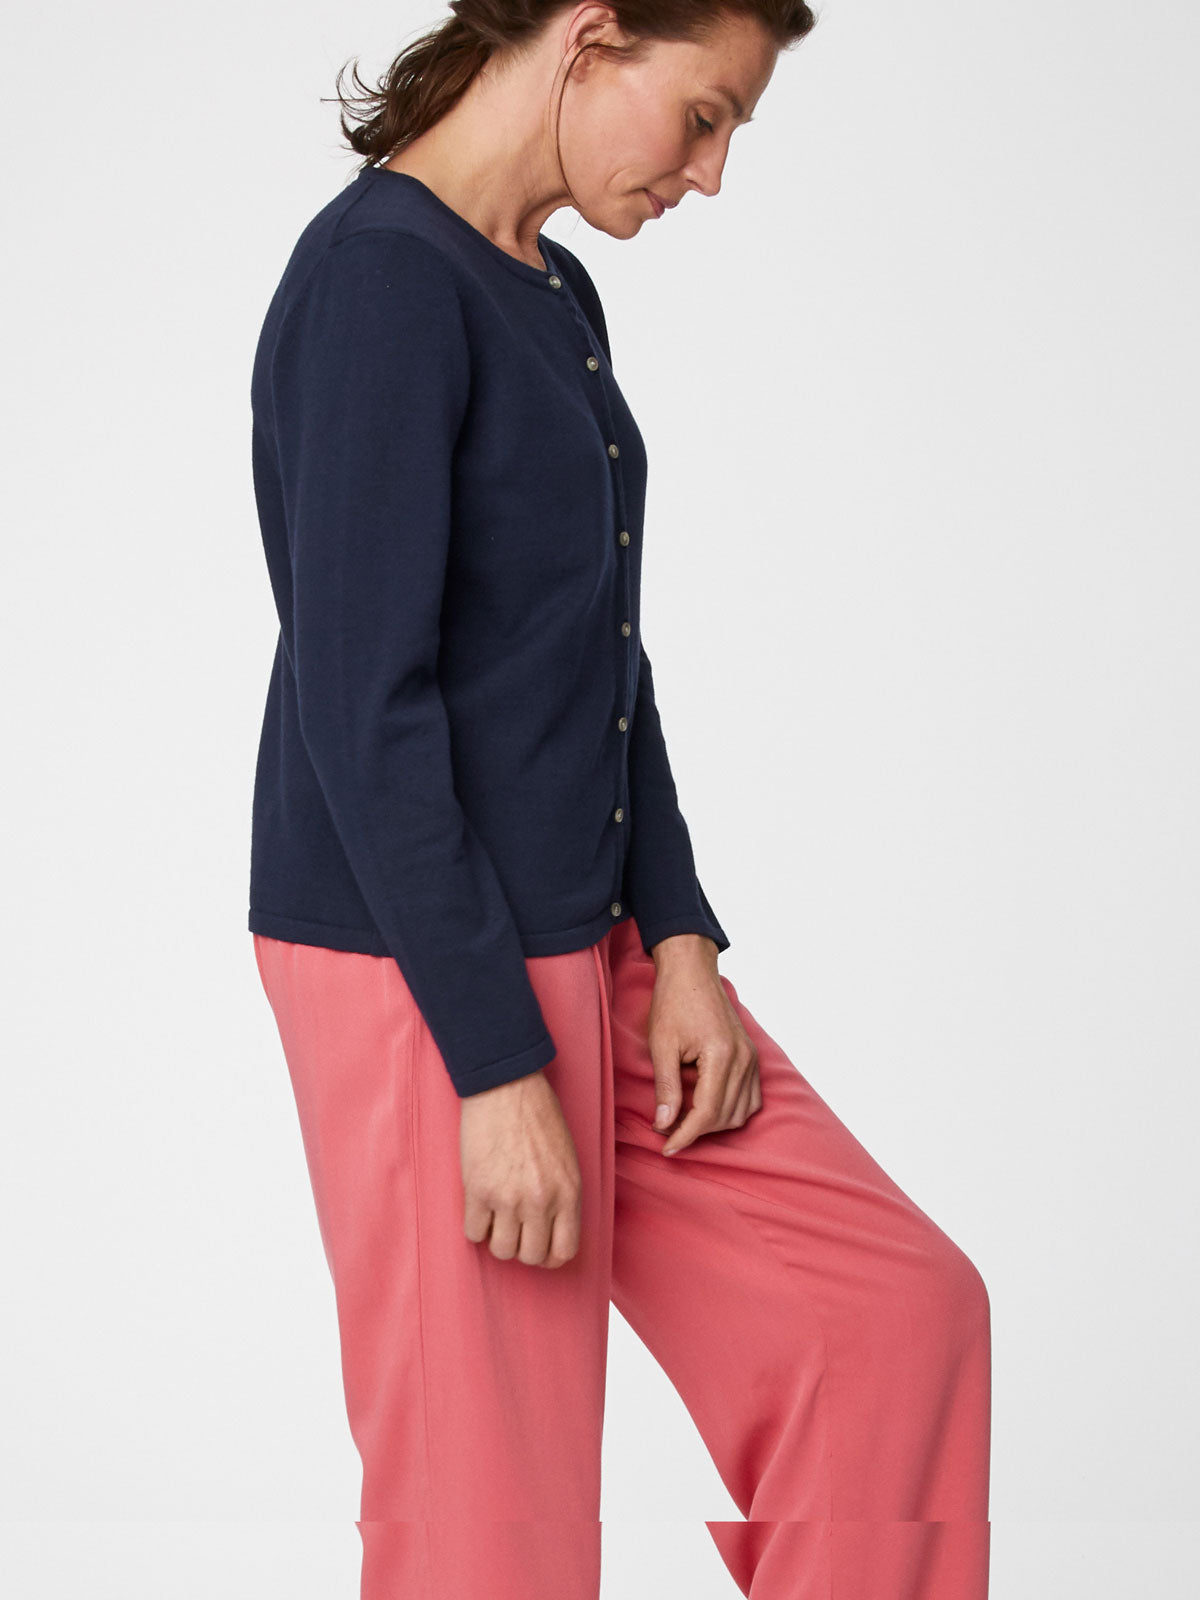 Thought Bodil Cardigan for Ladies in Navy